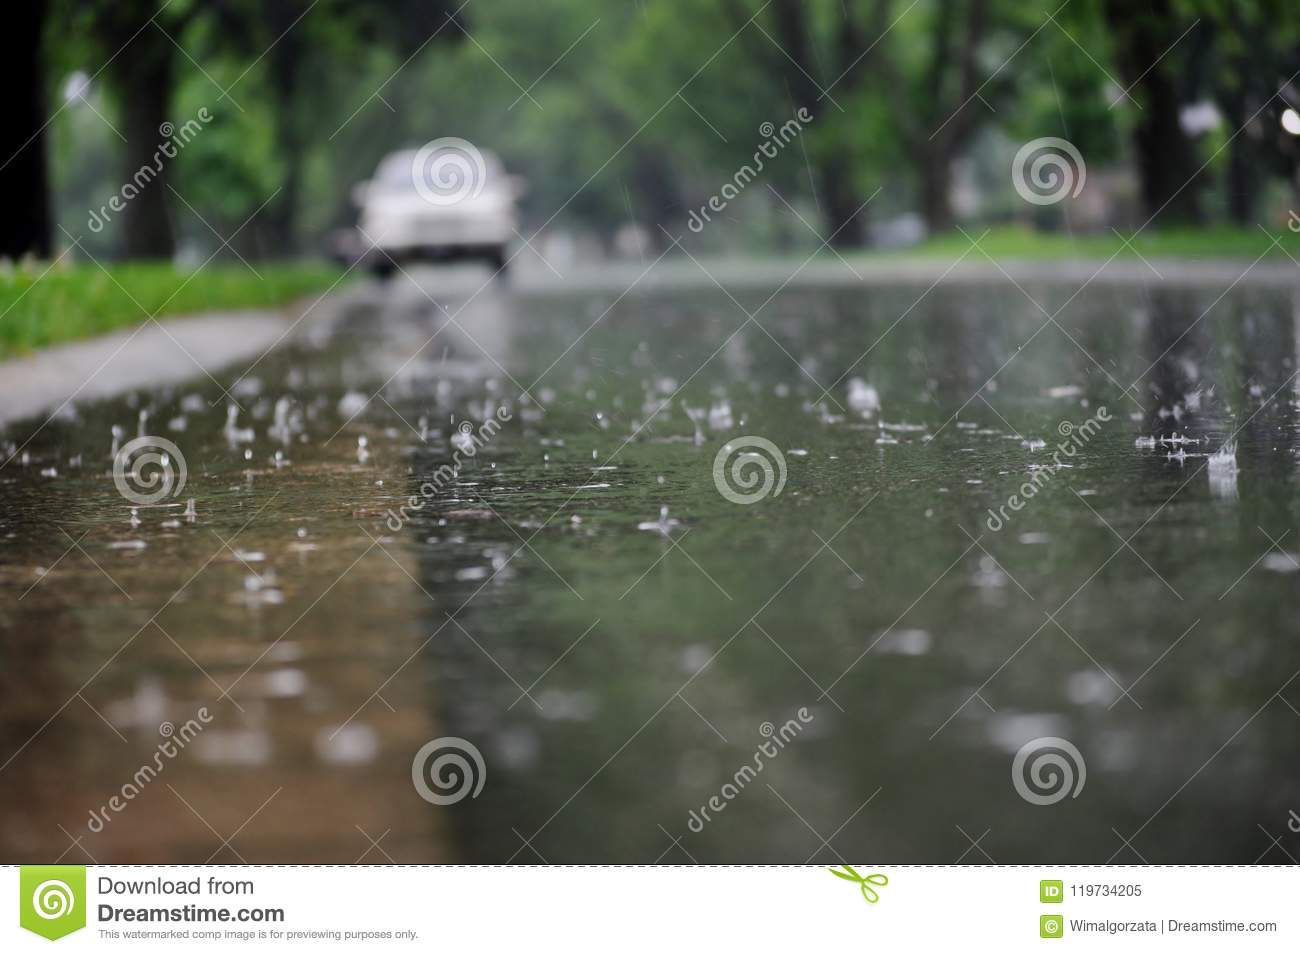 wet street surface during rain stock image image of level